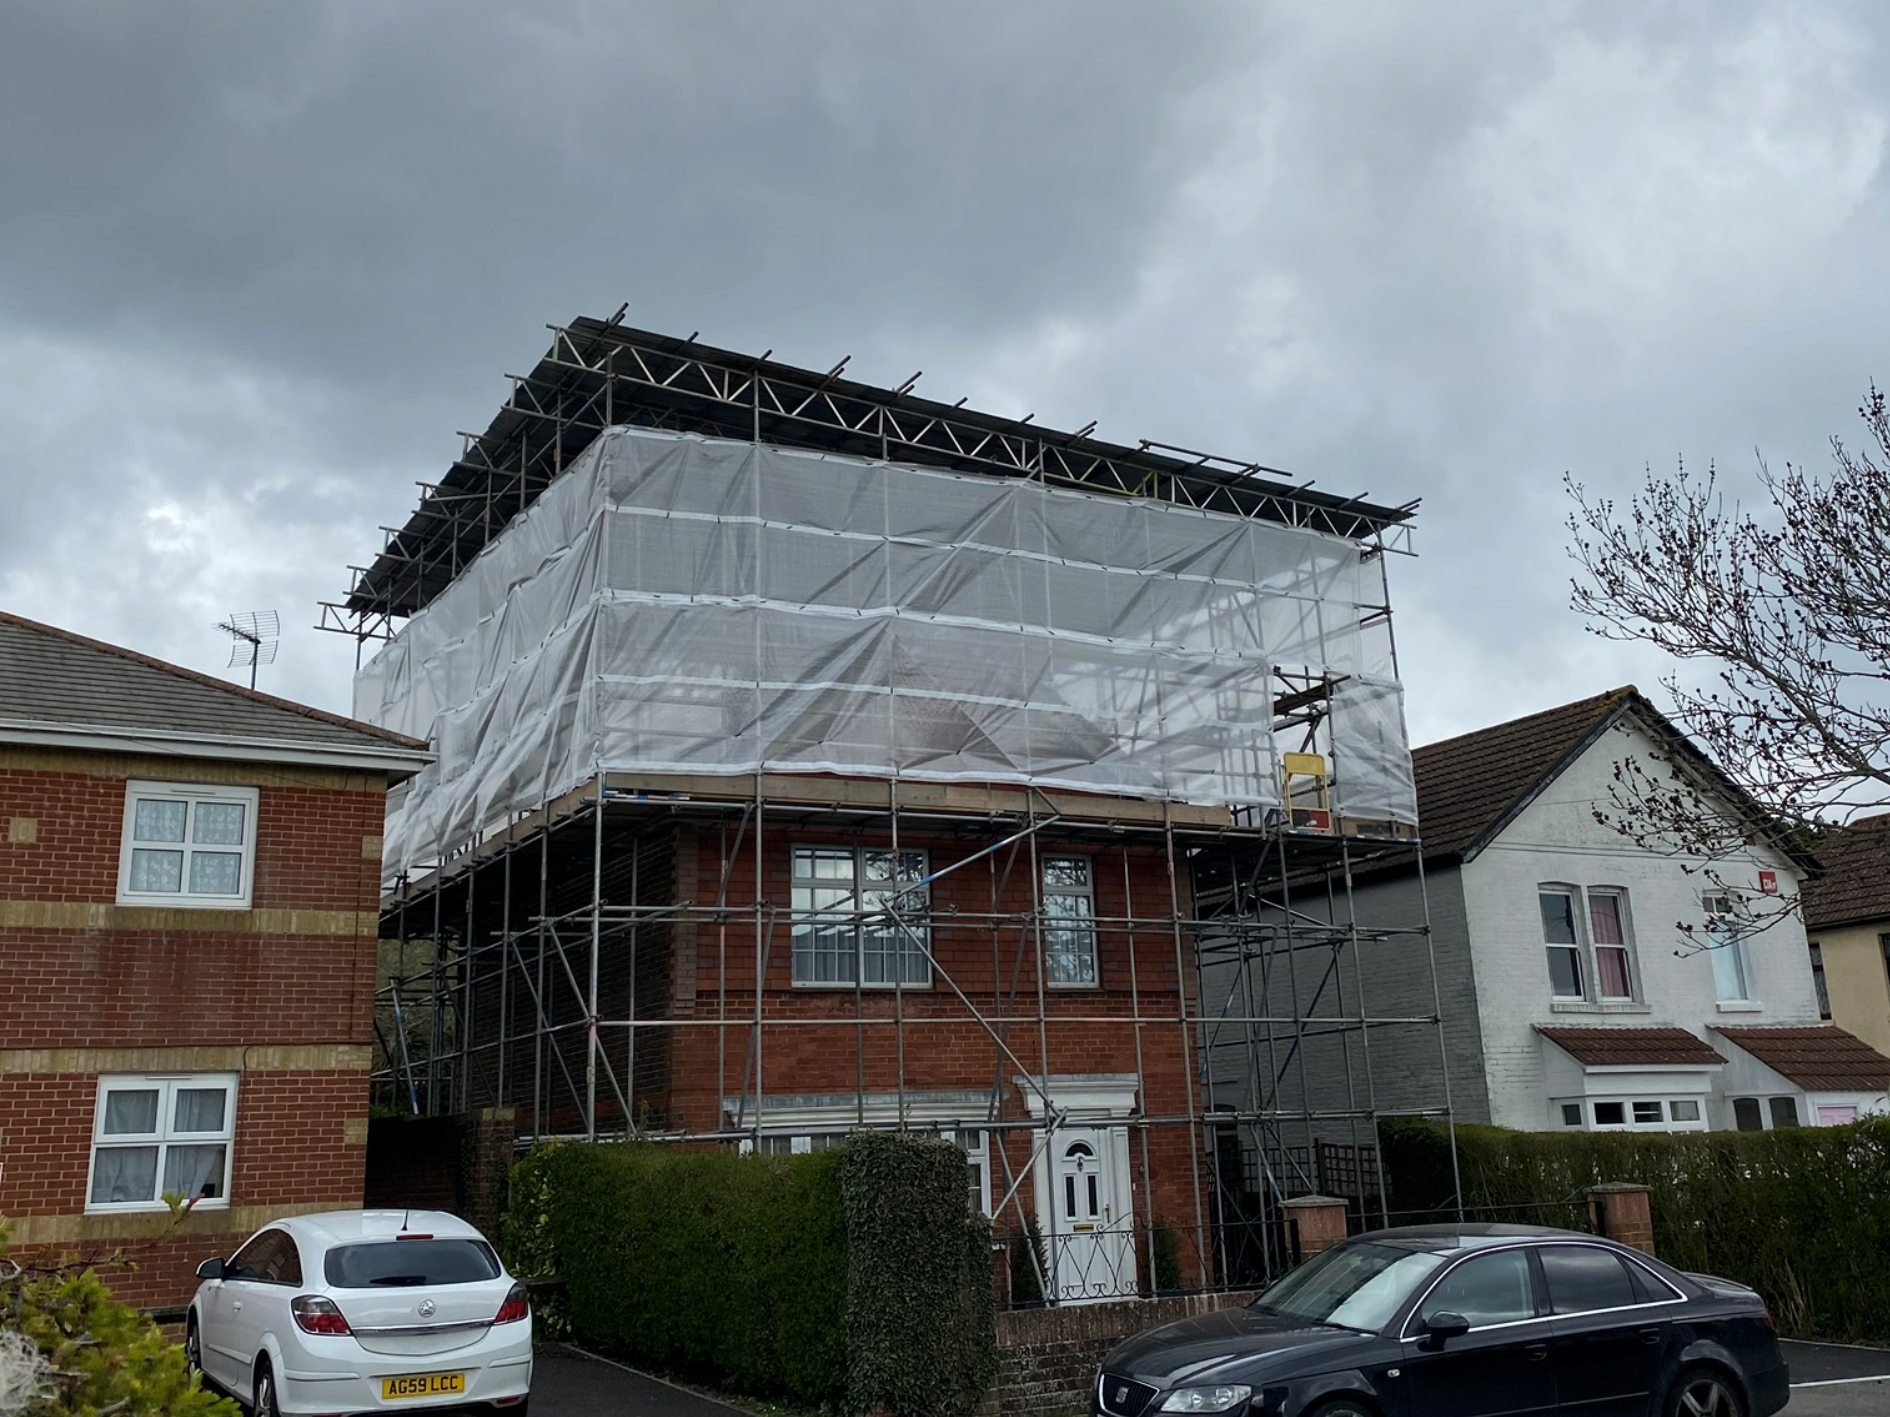 Scaffolding work Temporary roof scaffolding over a residential house